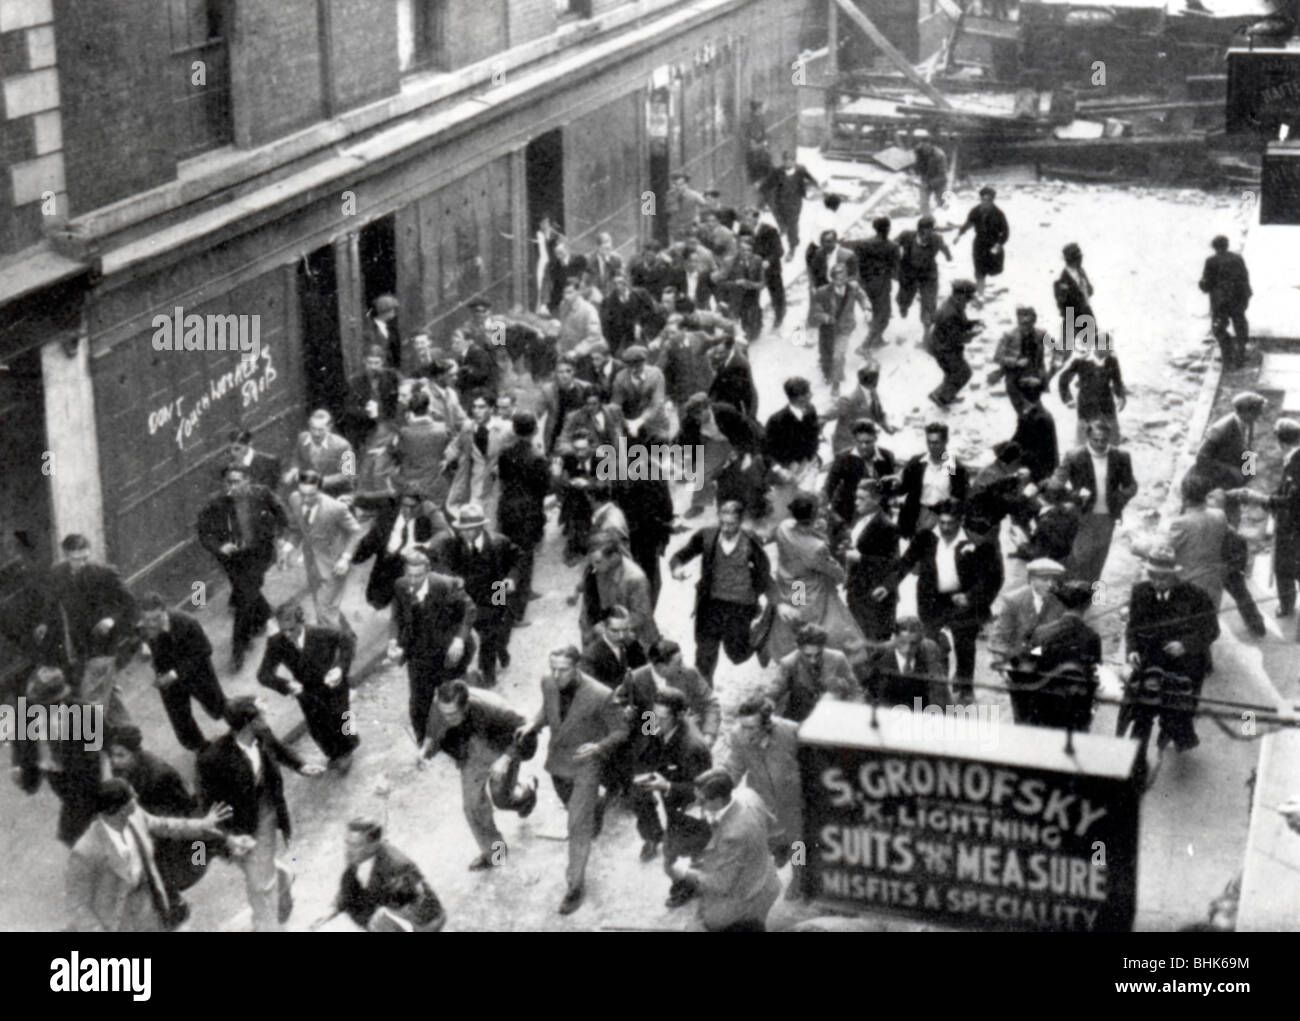 'Battle of Cable Street', Aldgate, London, 5th October 1936. - Stock Image